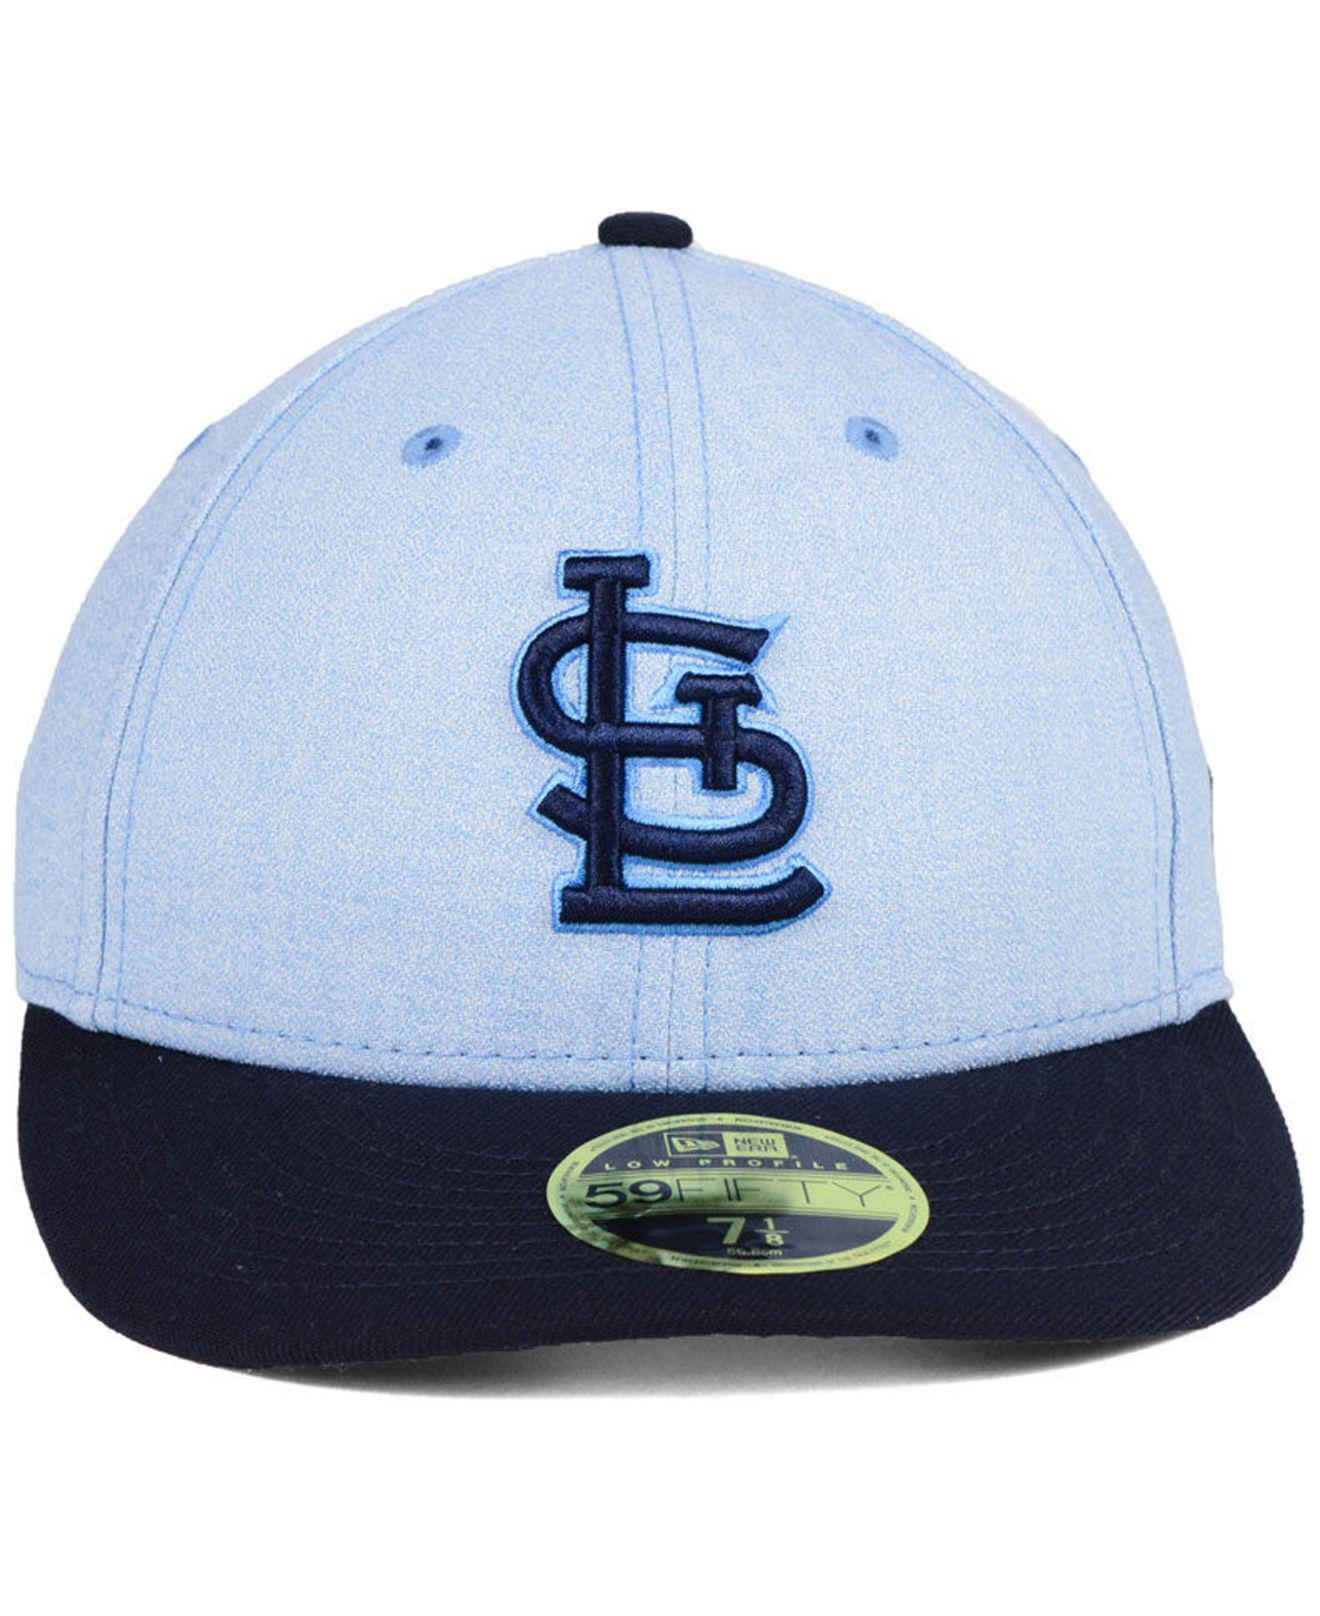 b6f4e5761f6 ... flex hat ff250 e02d7  top quality lyst ktz st. louis cardinals fathers  day low profile 59fifty cap in blue